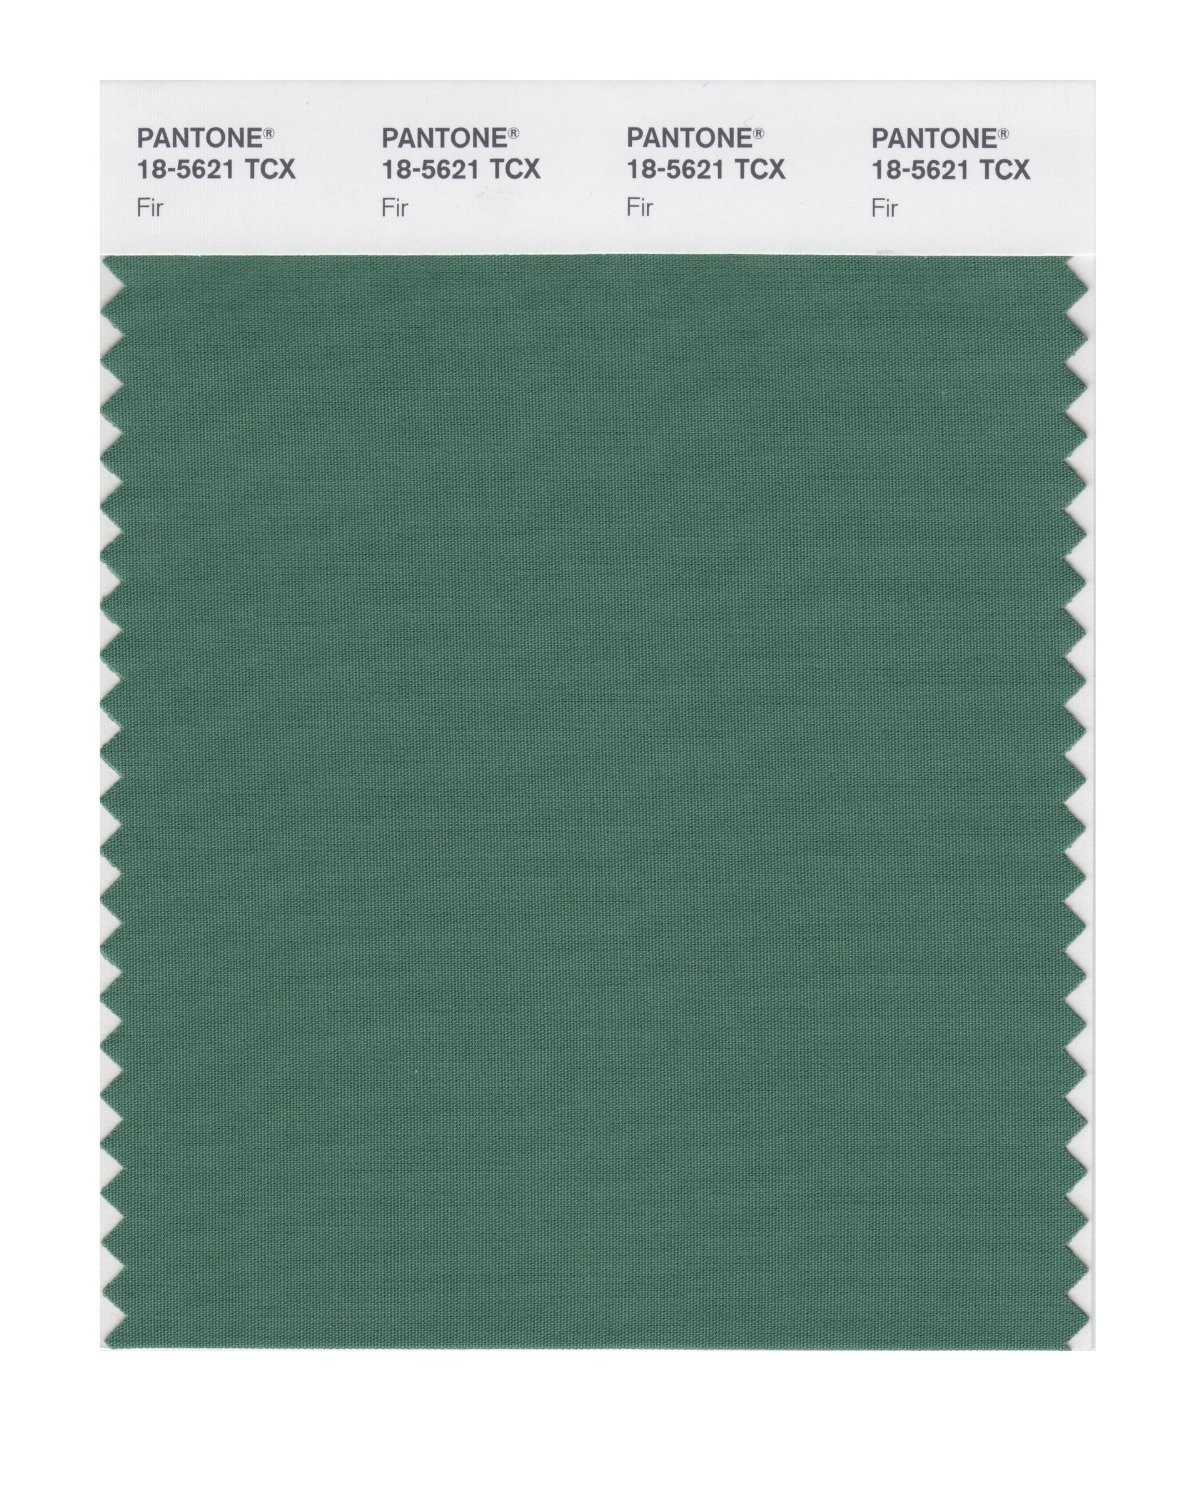 Pantone 18-5621 TCX Swatch Card Fir